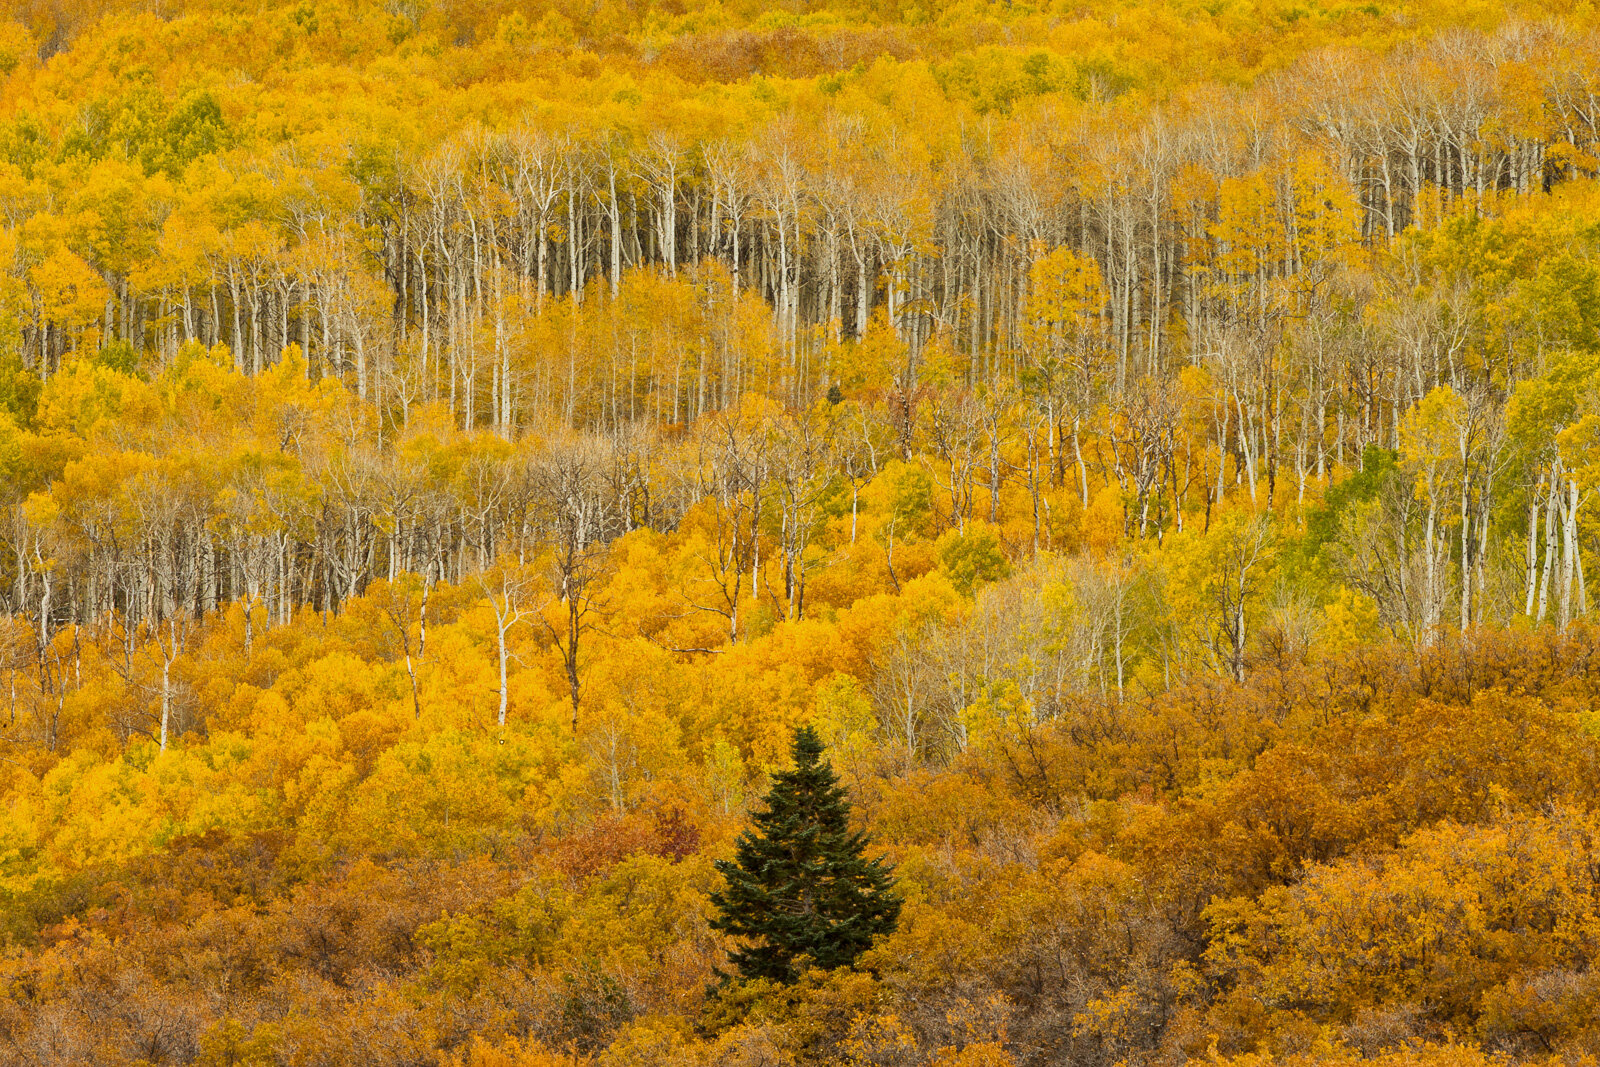 Aspen trees and gambel oak display brilliant autumn leaves in the La Sal Mountains near Moab, Utah.